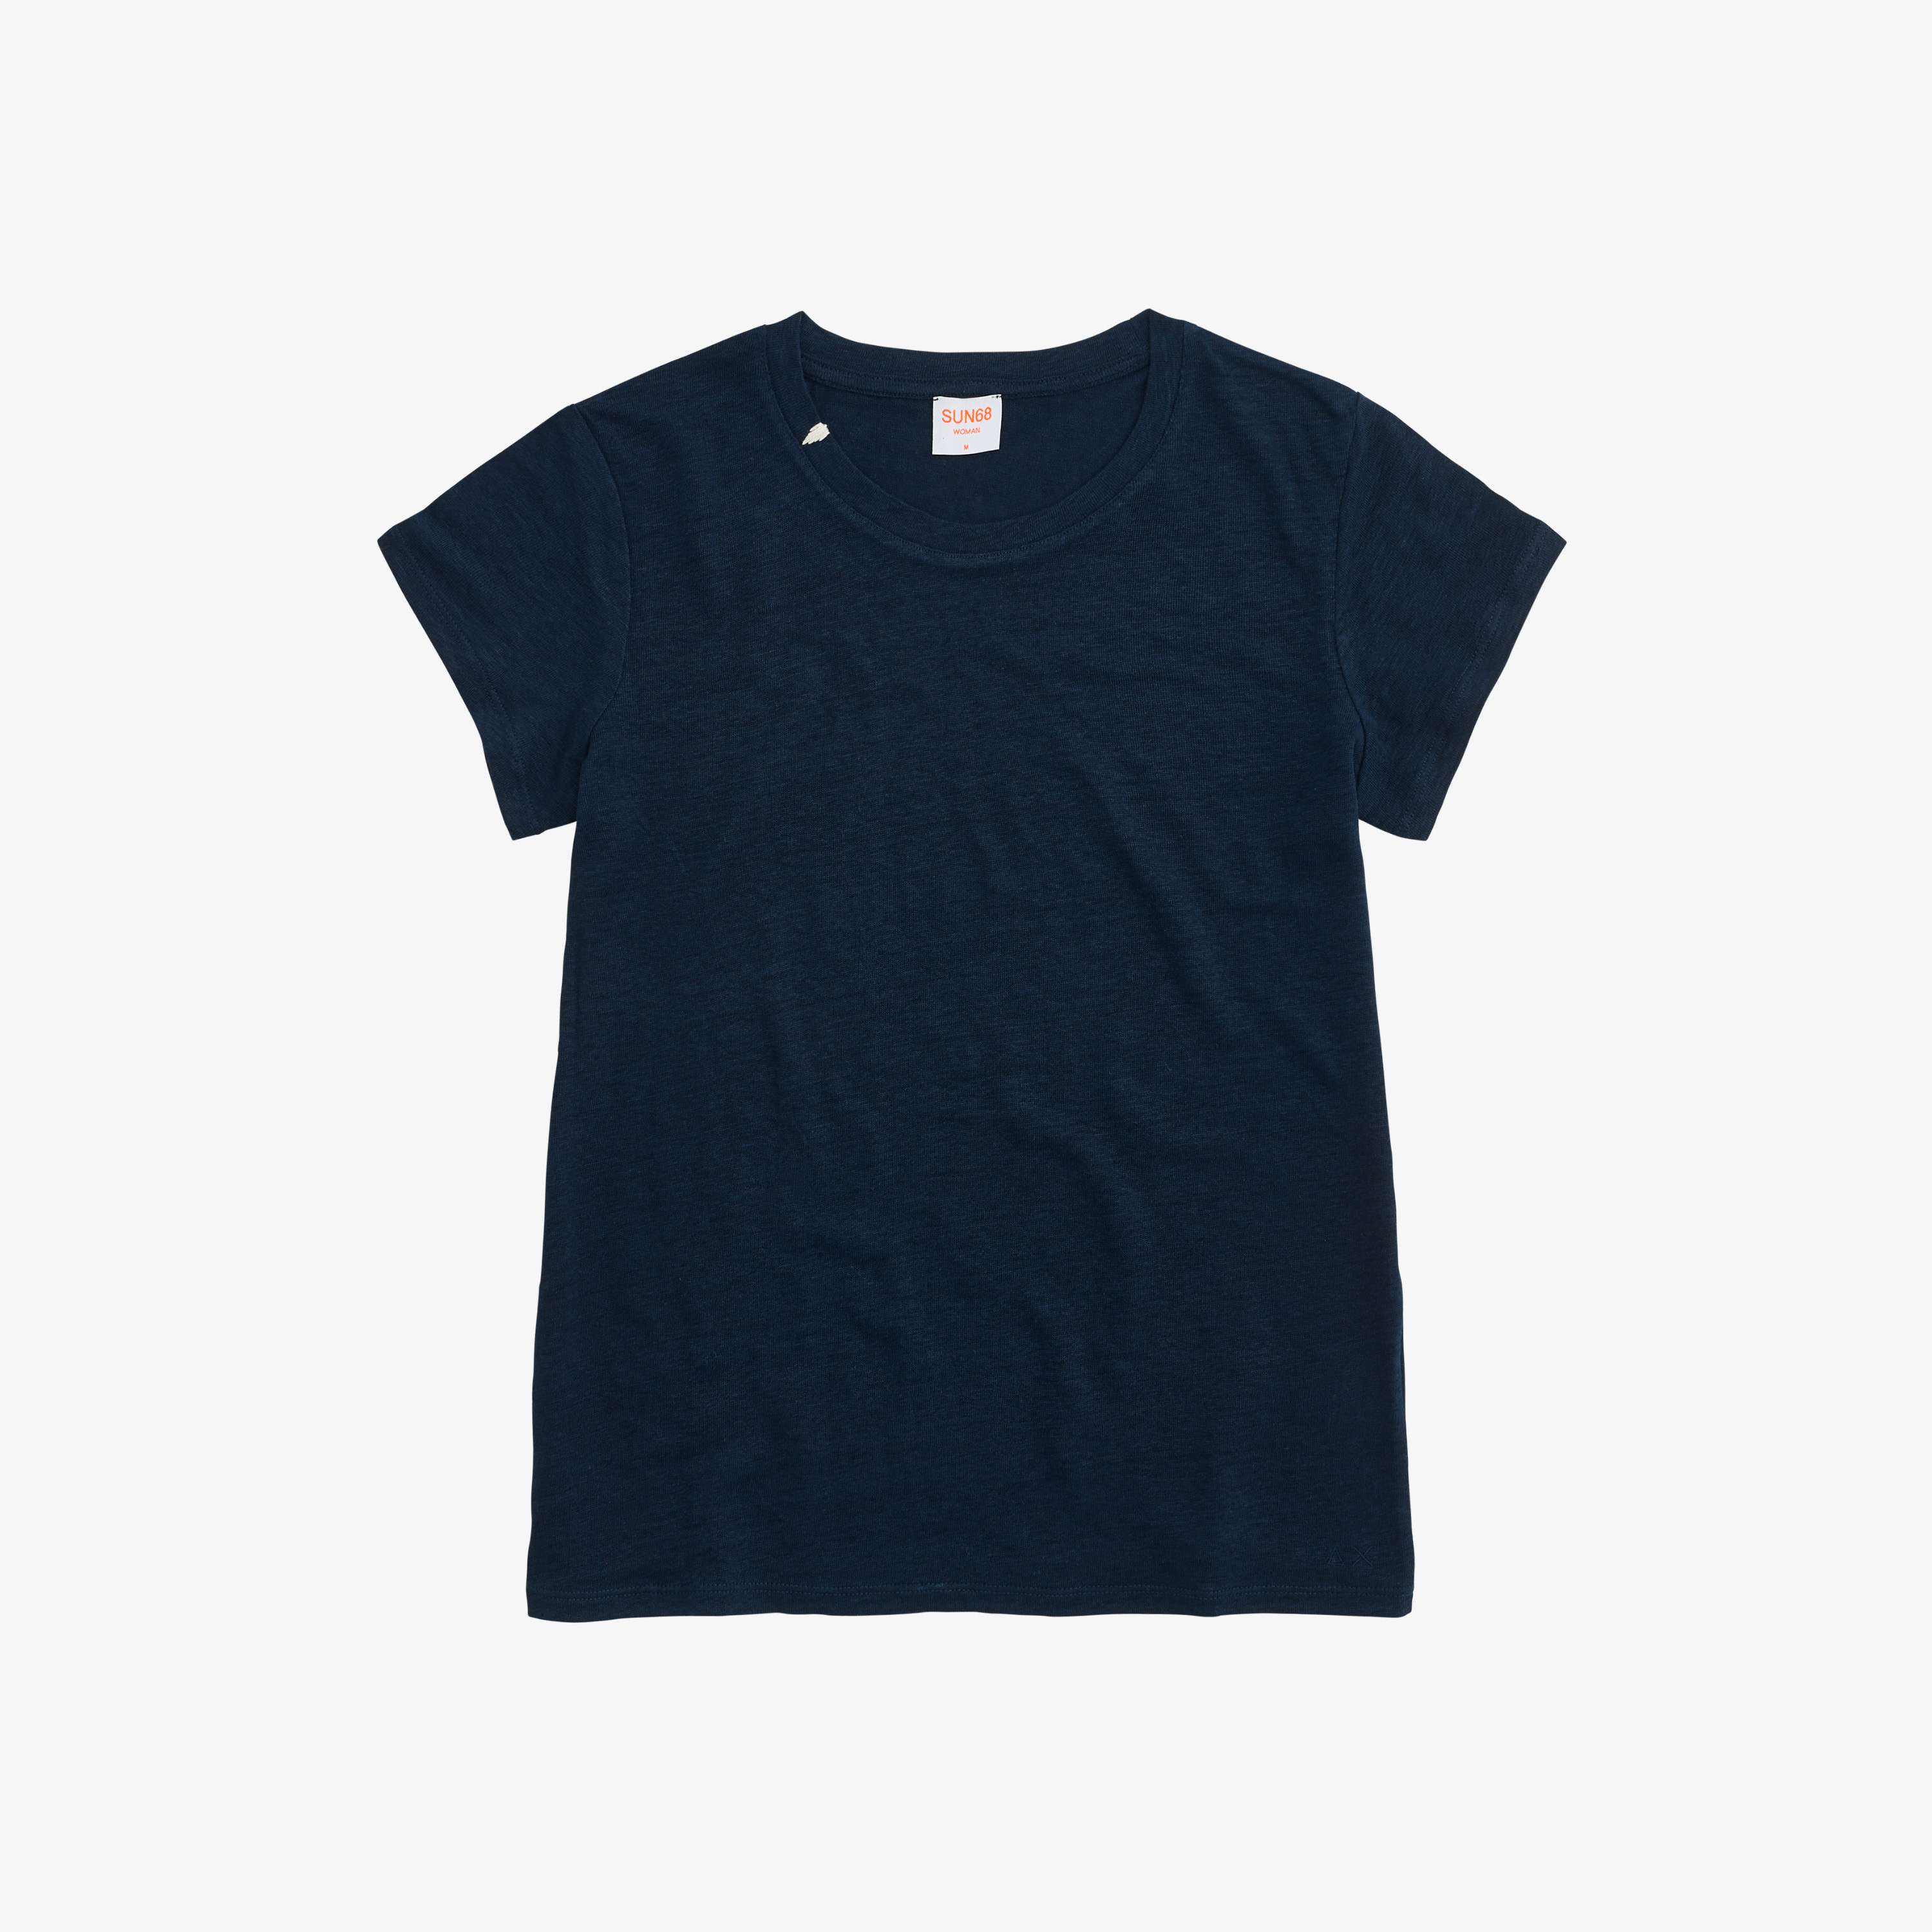 ROUND T-SHIRT LINEN SOLID S/S NAVY BLUE